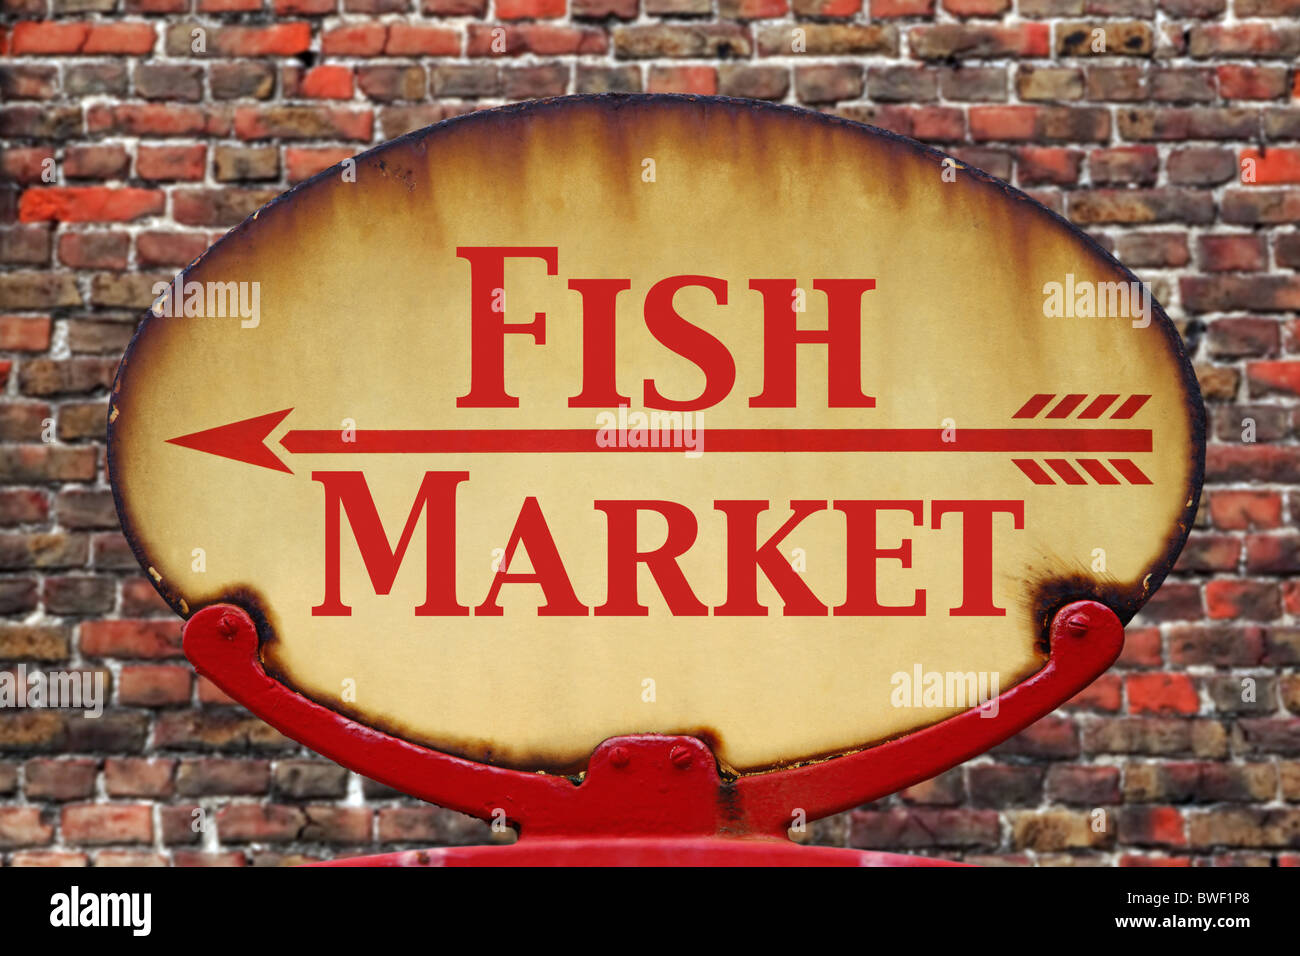 A rusty old retro arrow sign with the text Fish Market - Stock Image